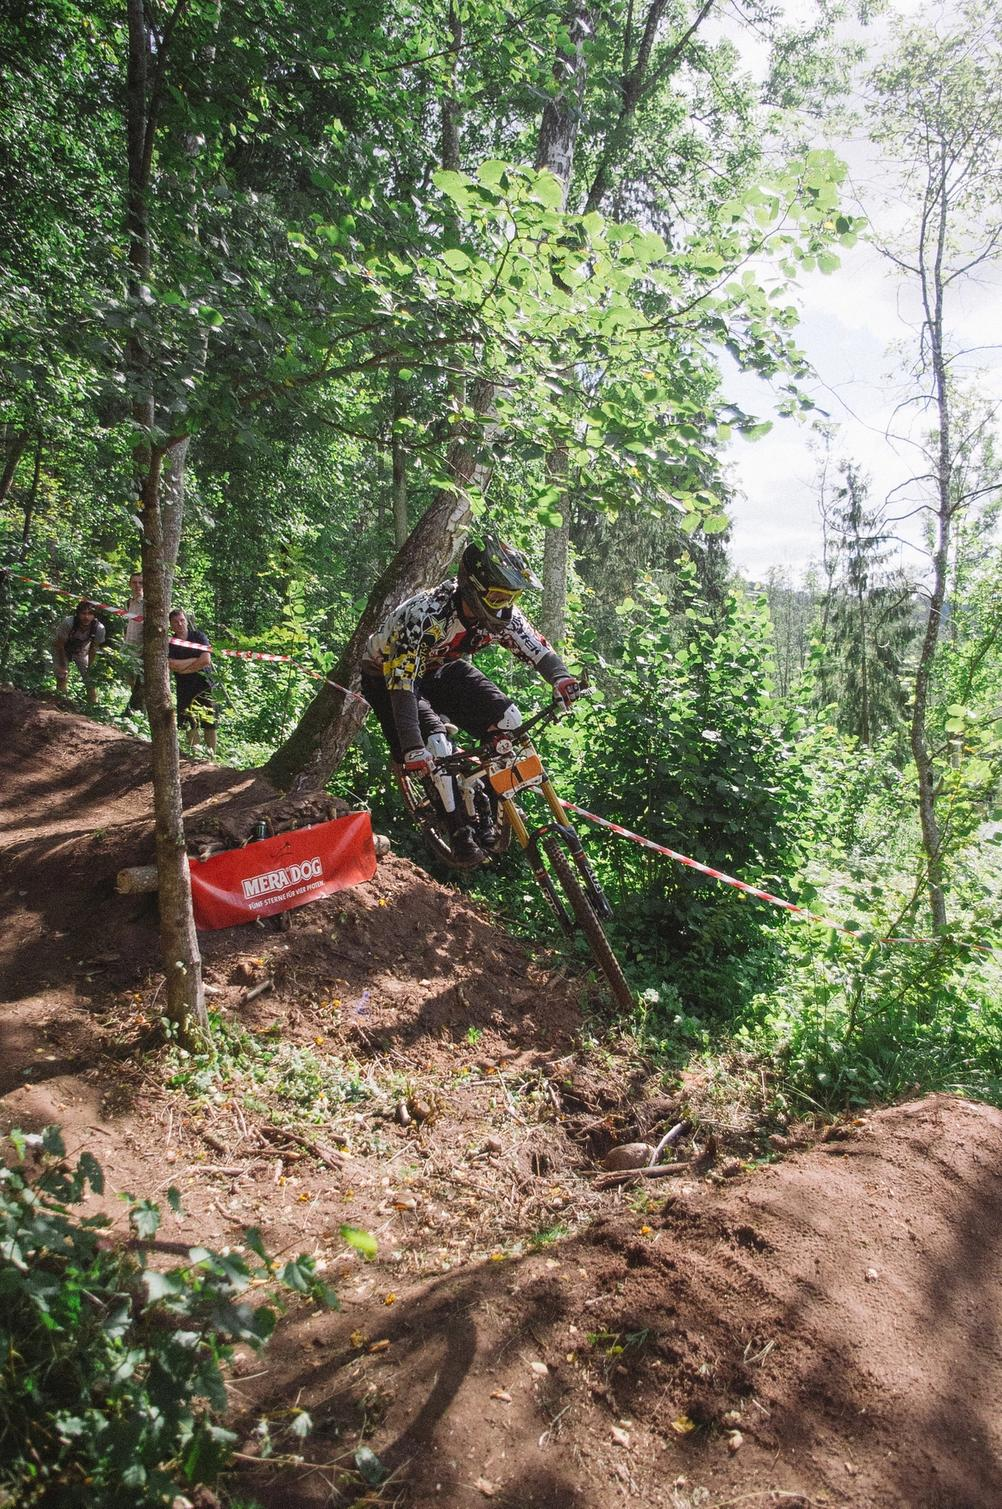 Downhill racer jumping over a gap during race